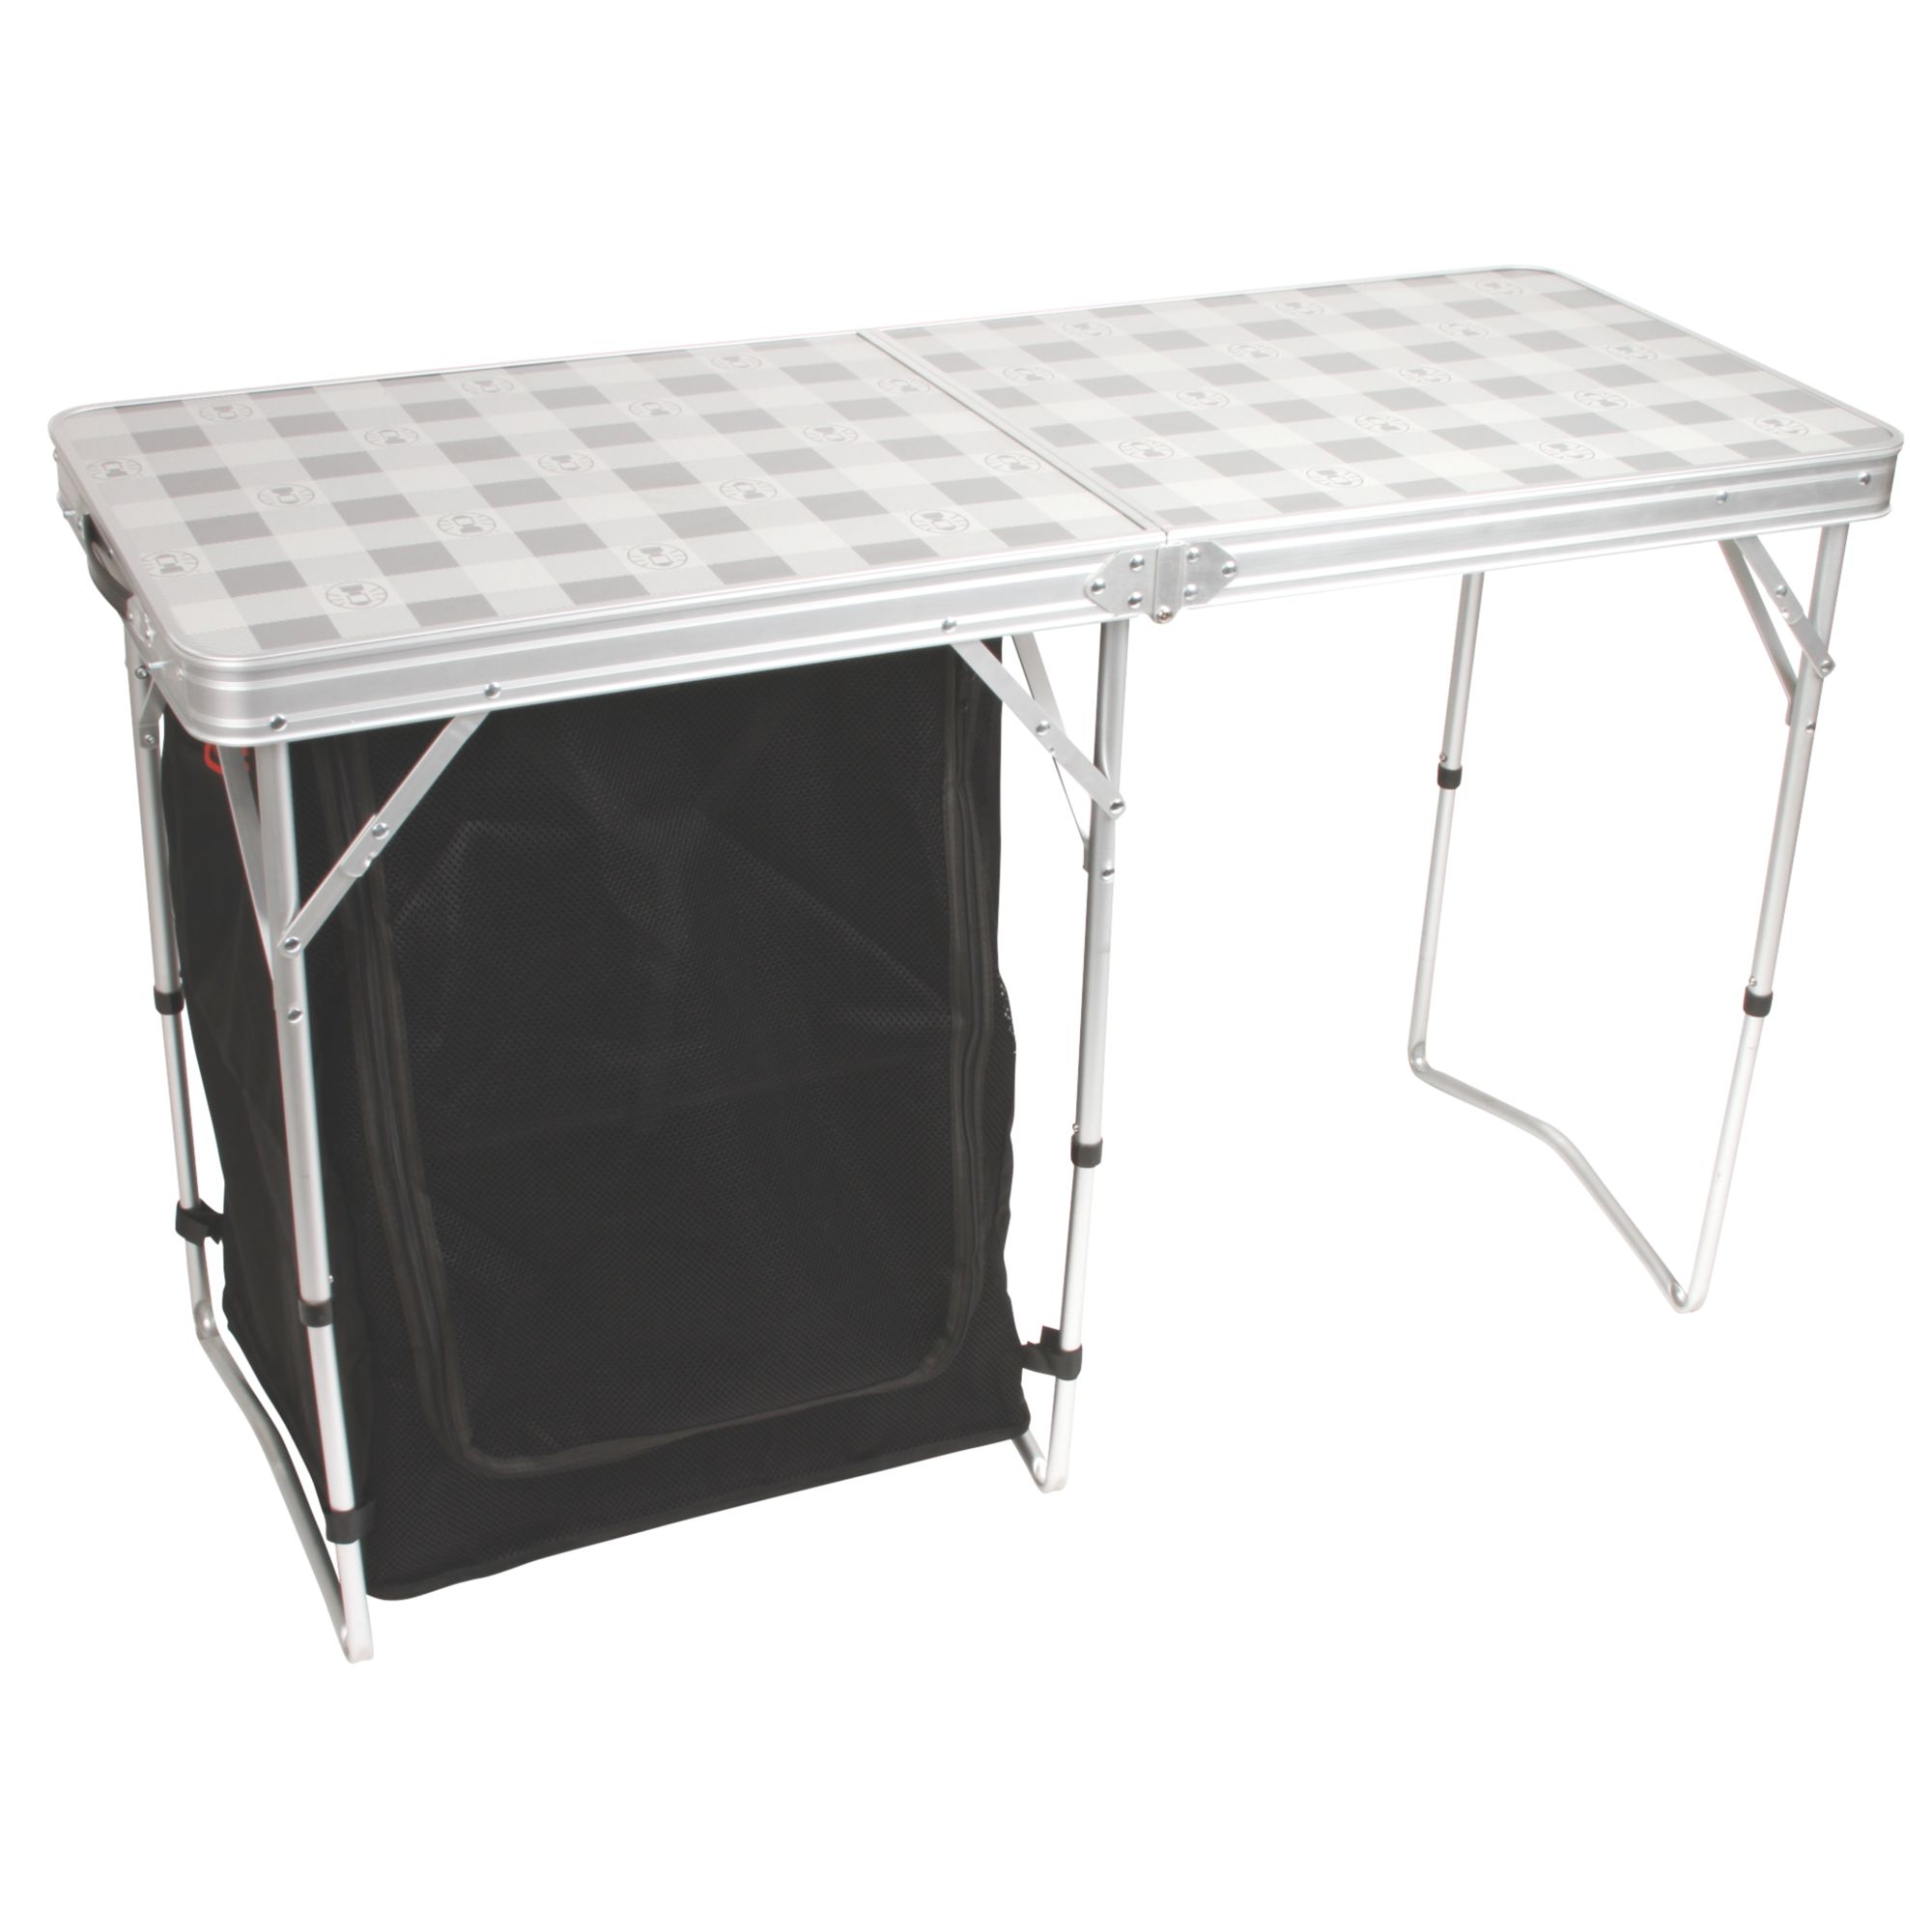 Store More™ Cupboard Table | Coleman